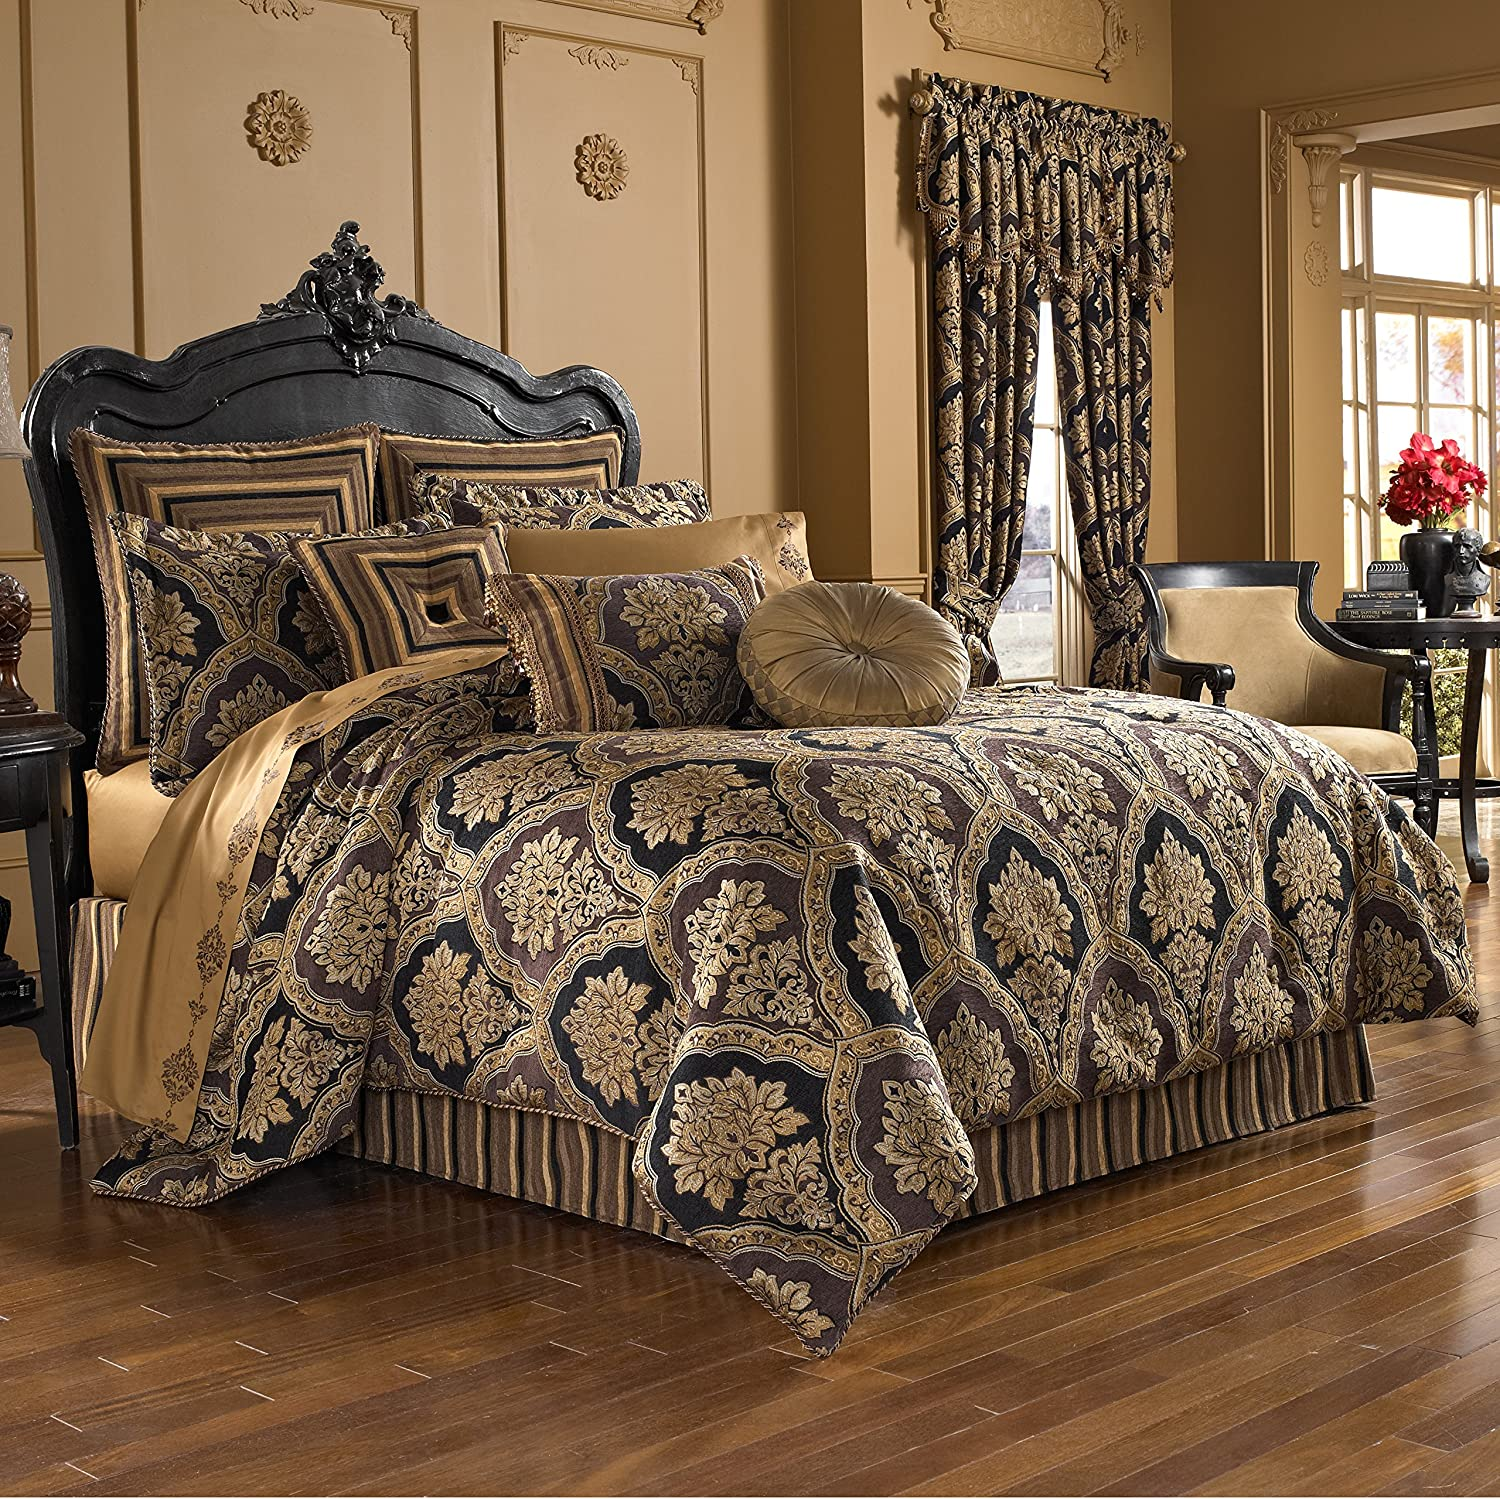 Five Ranking TOP17 Queens Court Reilly Woven Quality Em Chenille Damask Challenge the lowest price of Japan Luxury